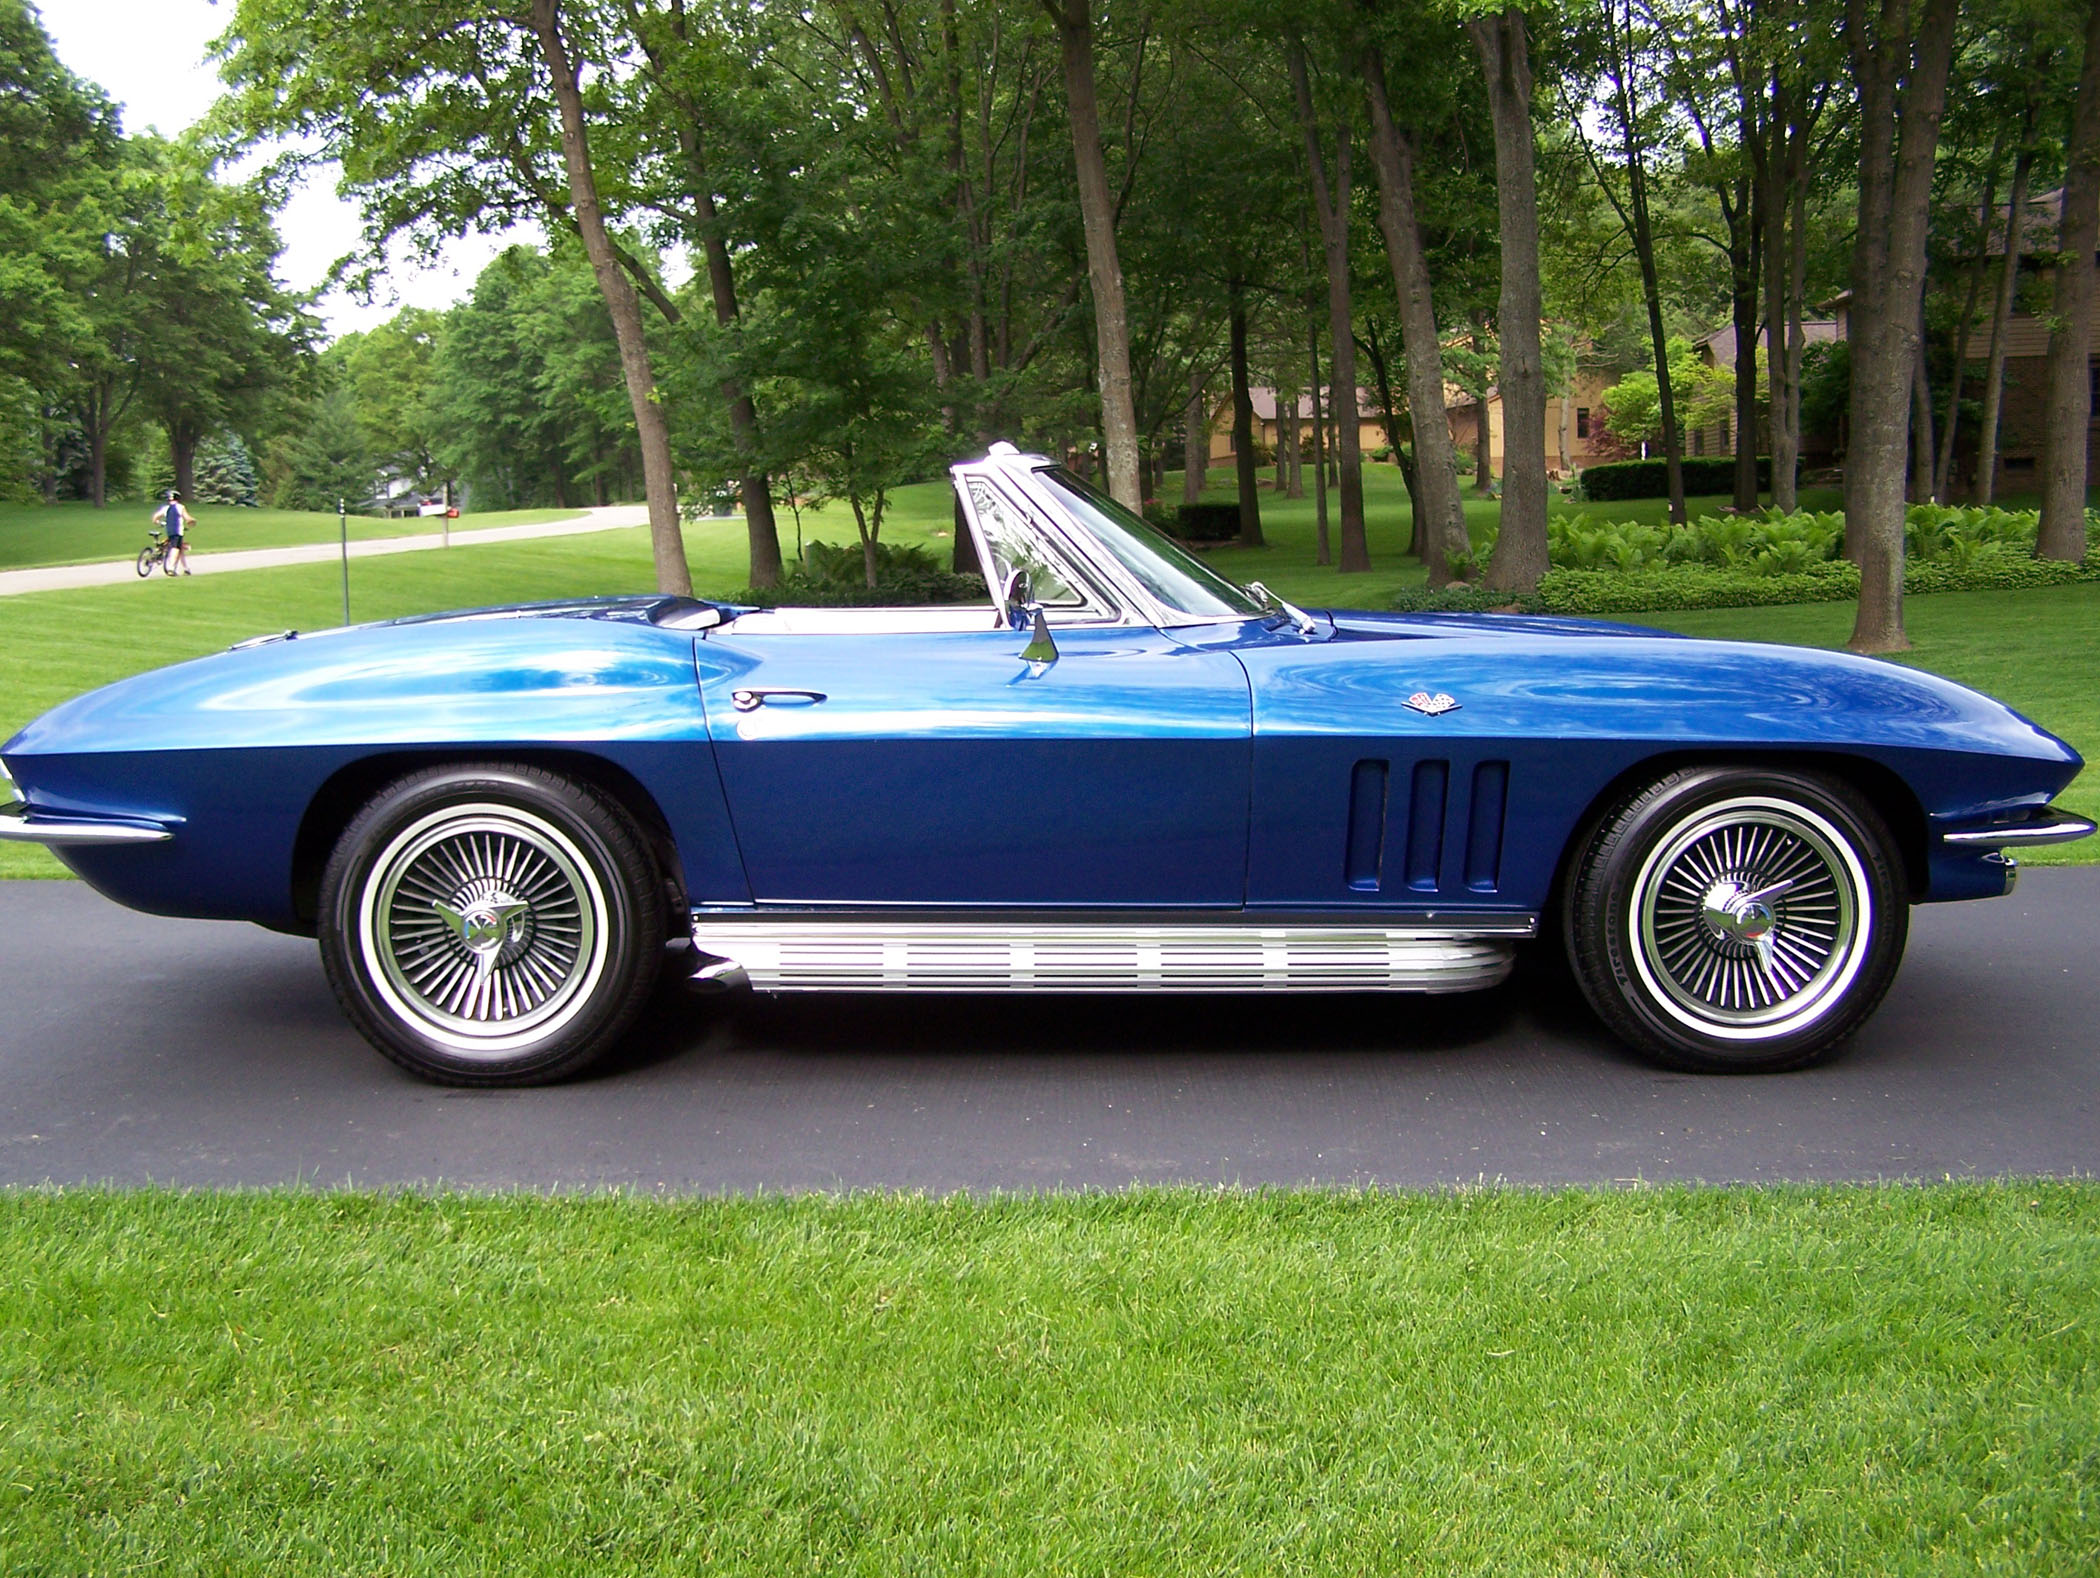 1966 Corvette purchased by dad, now inherited by son - Classic ...